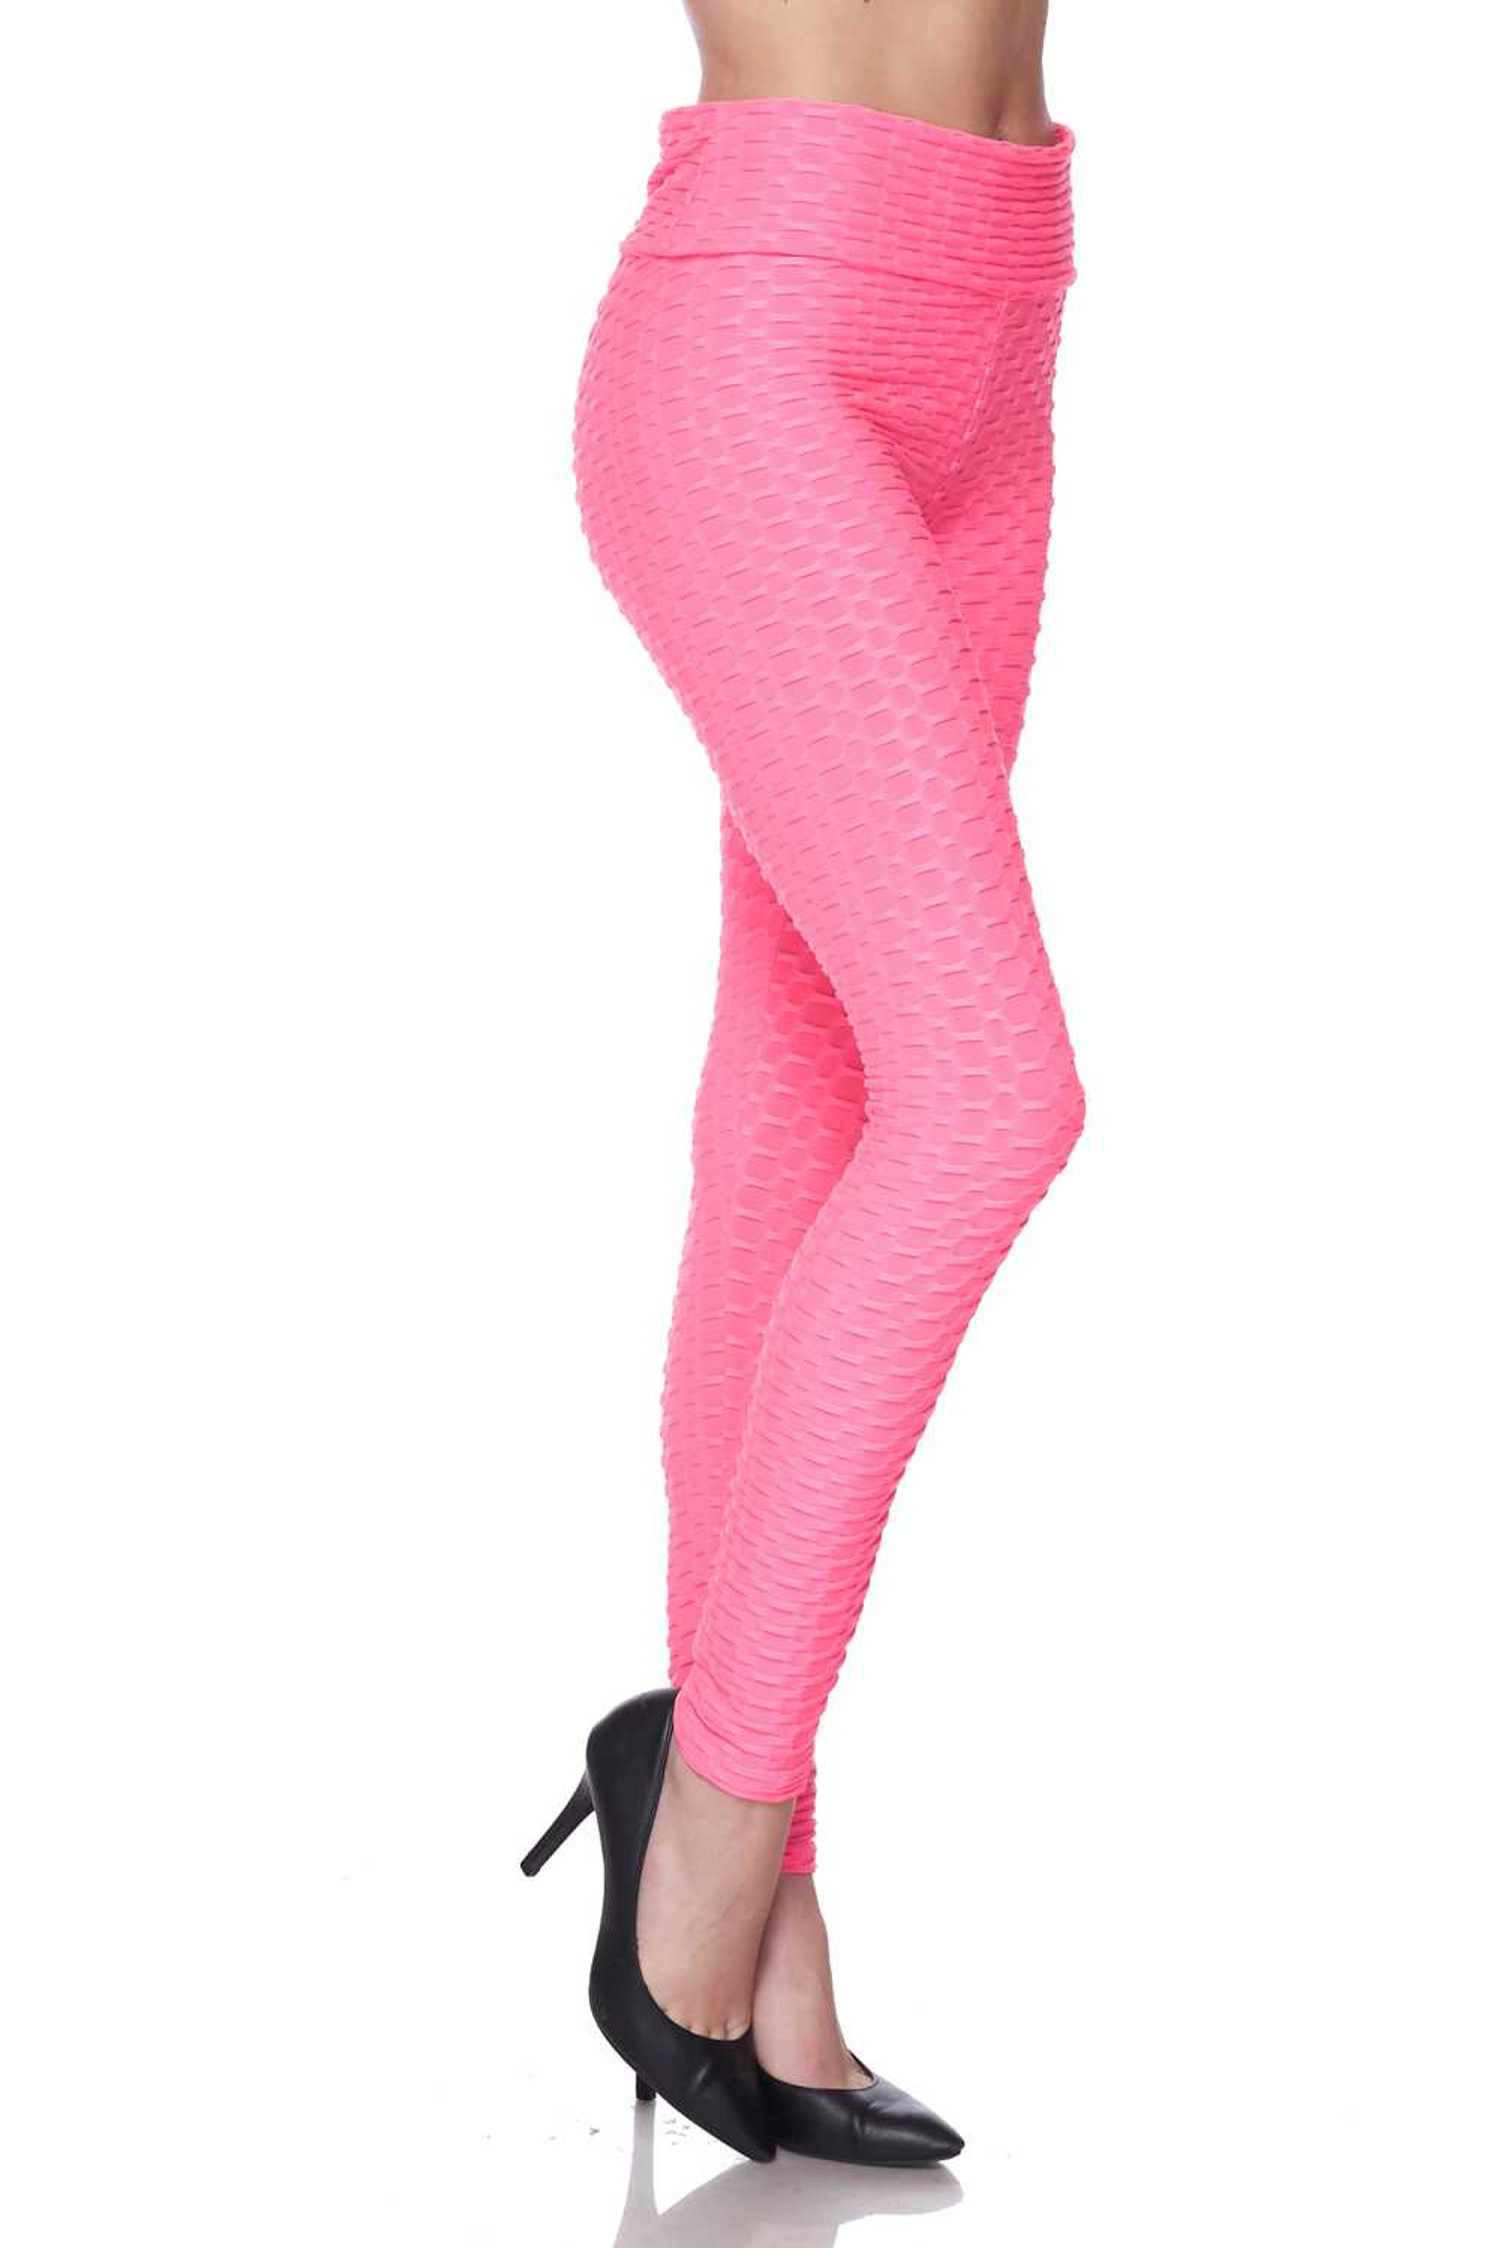 Right side image of Neon Pink Scrunch Butt Popcorn Textured High Waisted Leggings with Pockets - Zinati (W&J)